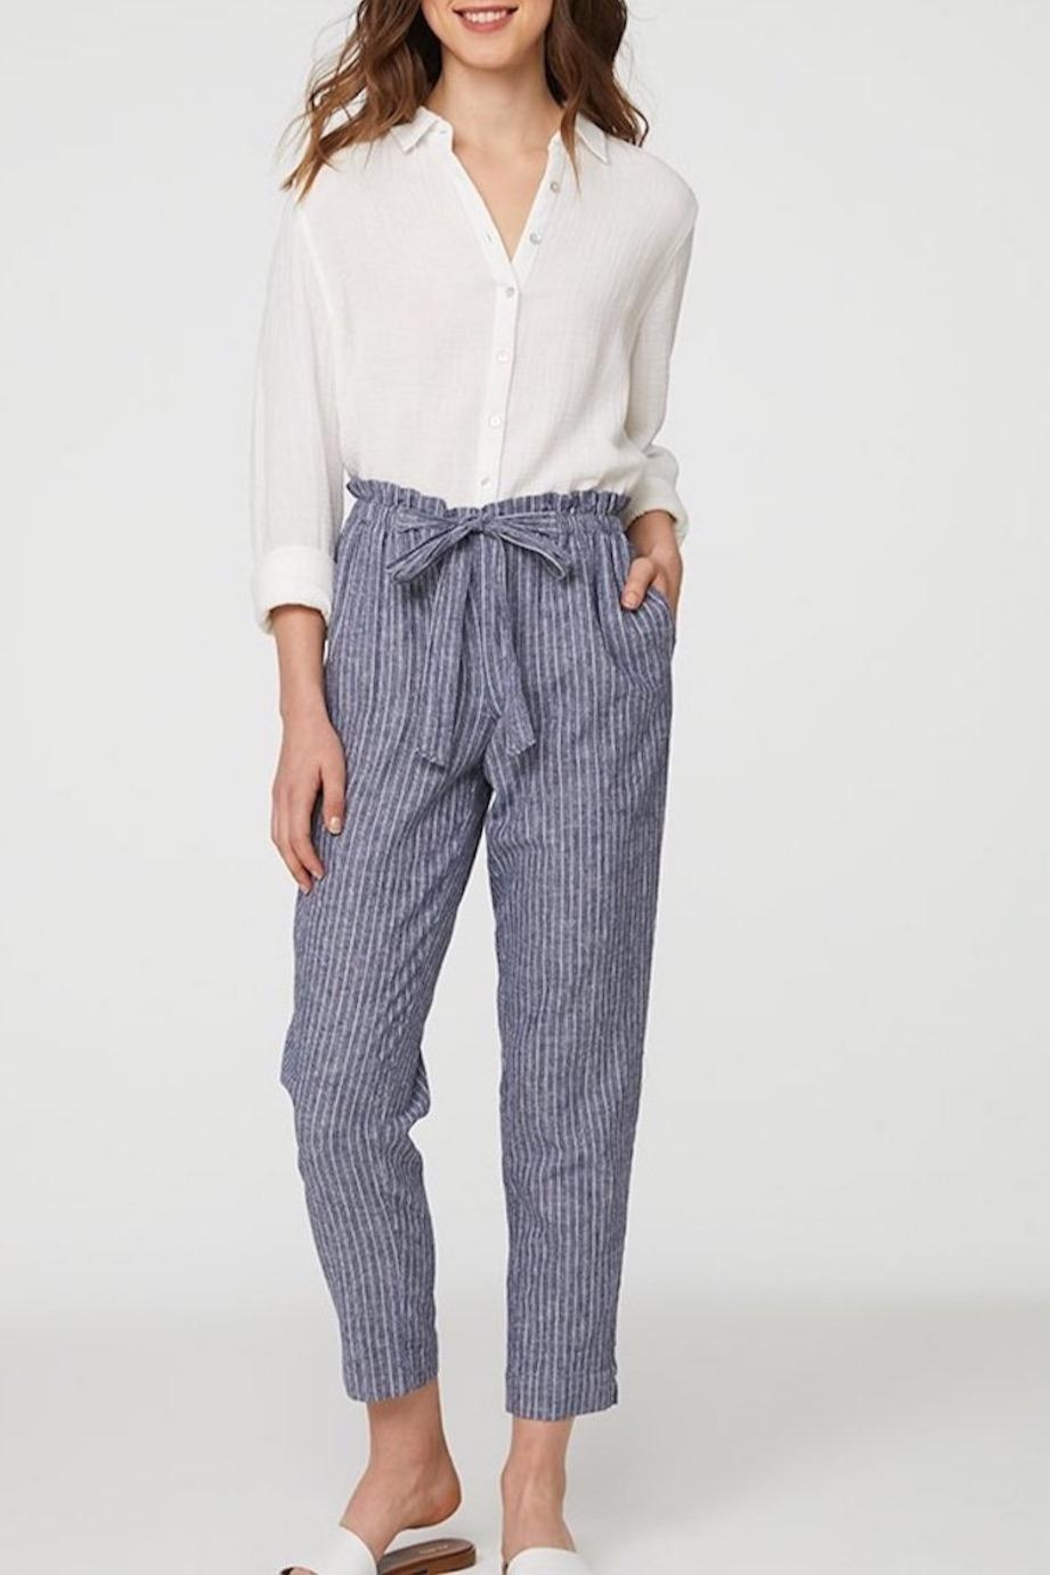 Beach Lunch Lounge Striped Linen Pants - Main Image